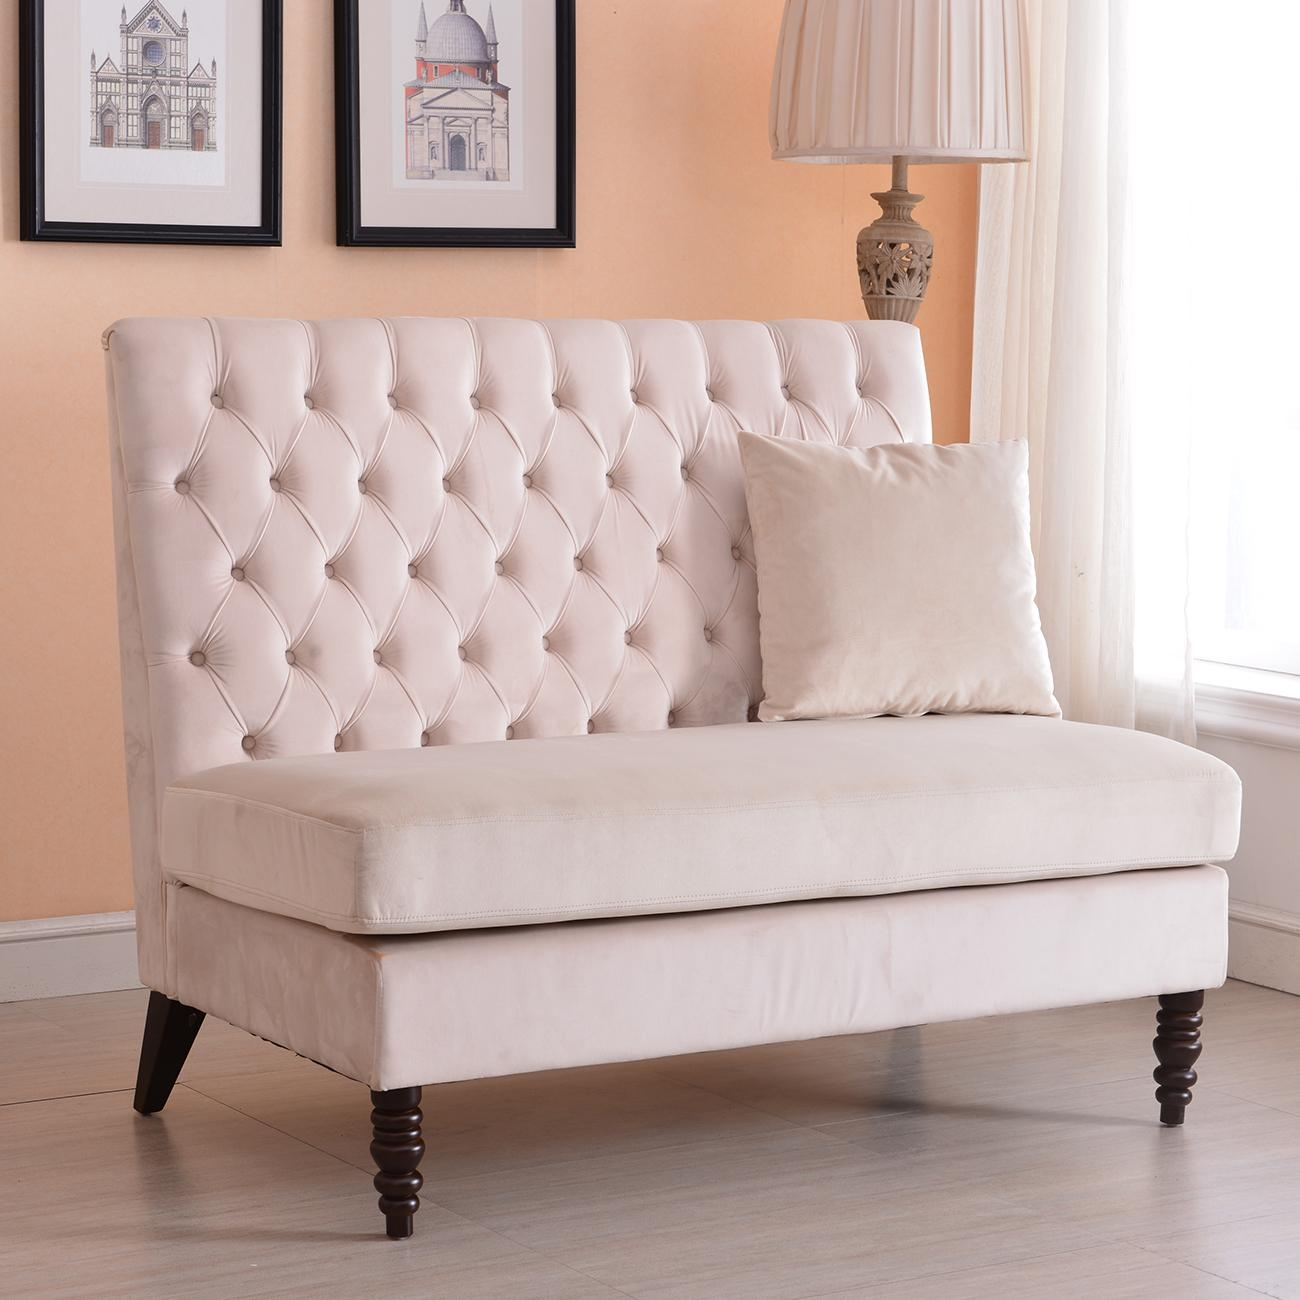 New Modern Tufted Settee Bedroom Bench Sofa High Back Cushion Seat Pertaining To Bench Cushion Sofas (View 20 of 20)